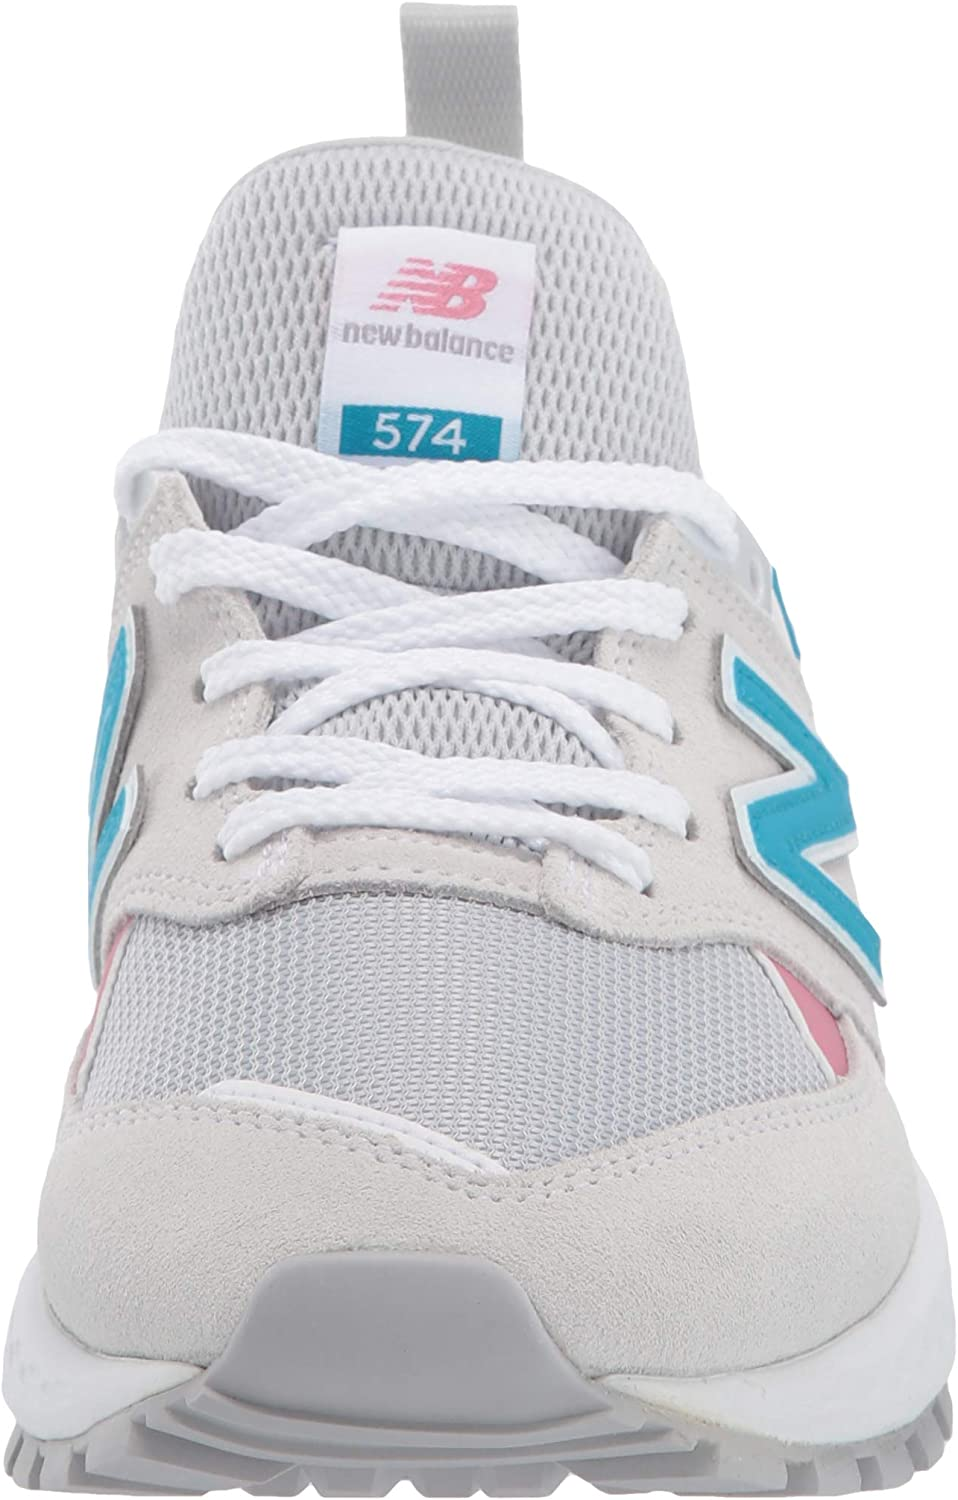 New Balance 574 in Suede, Womens.